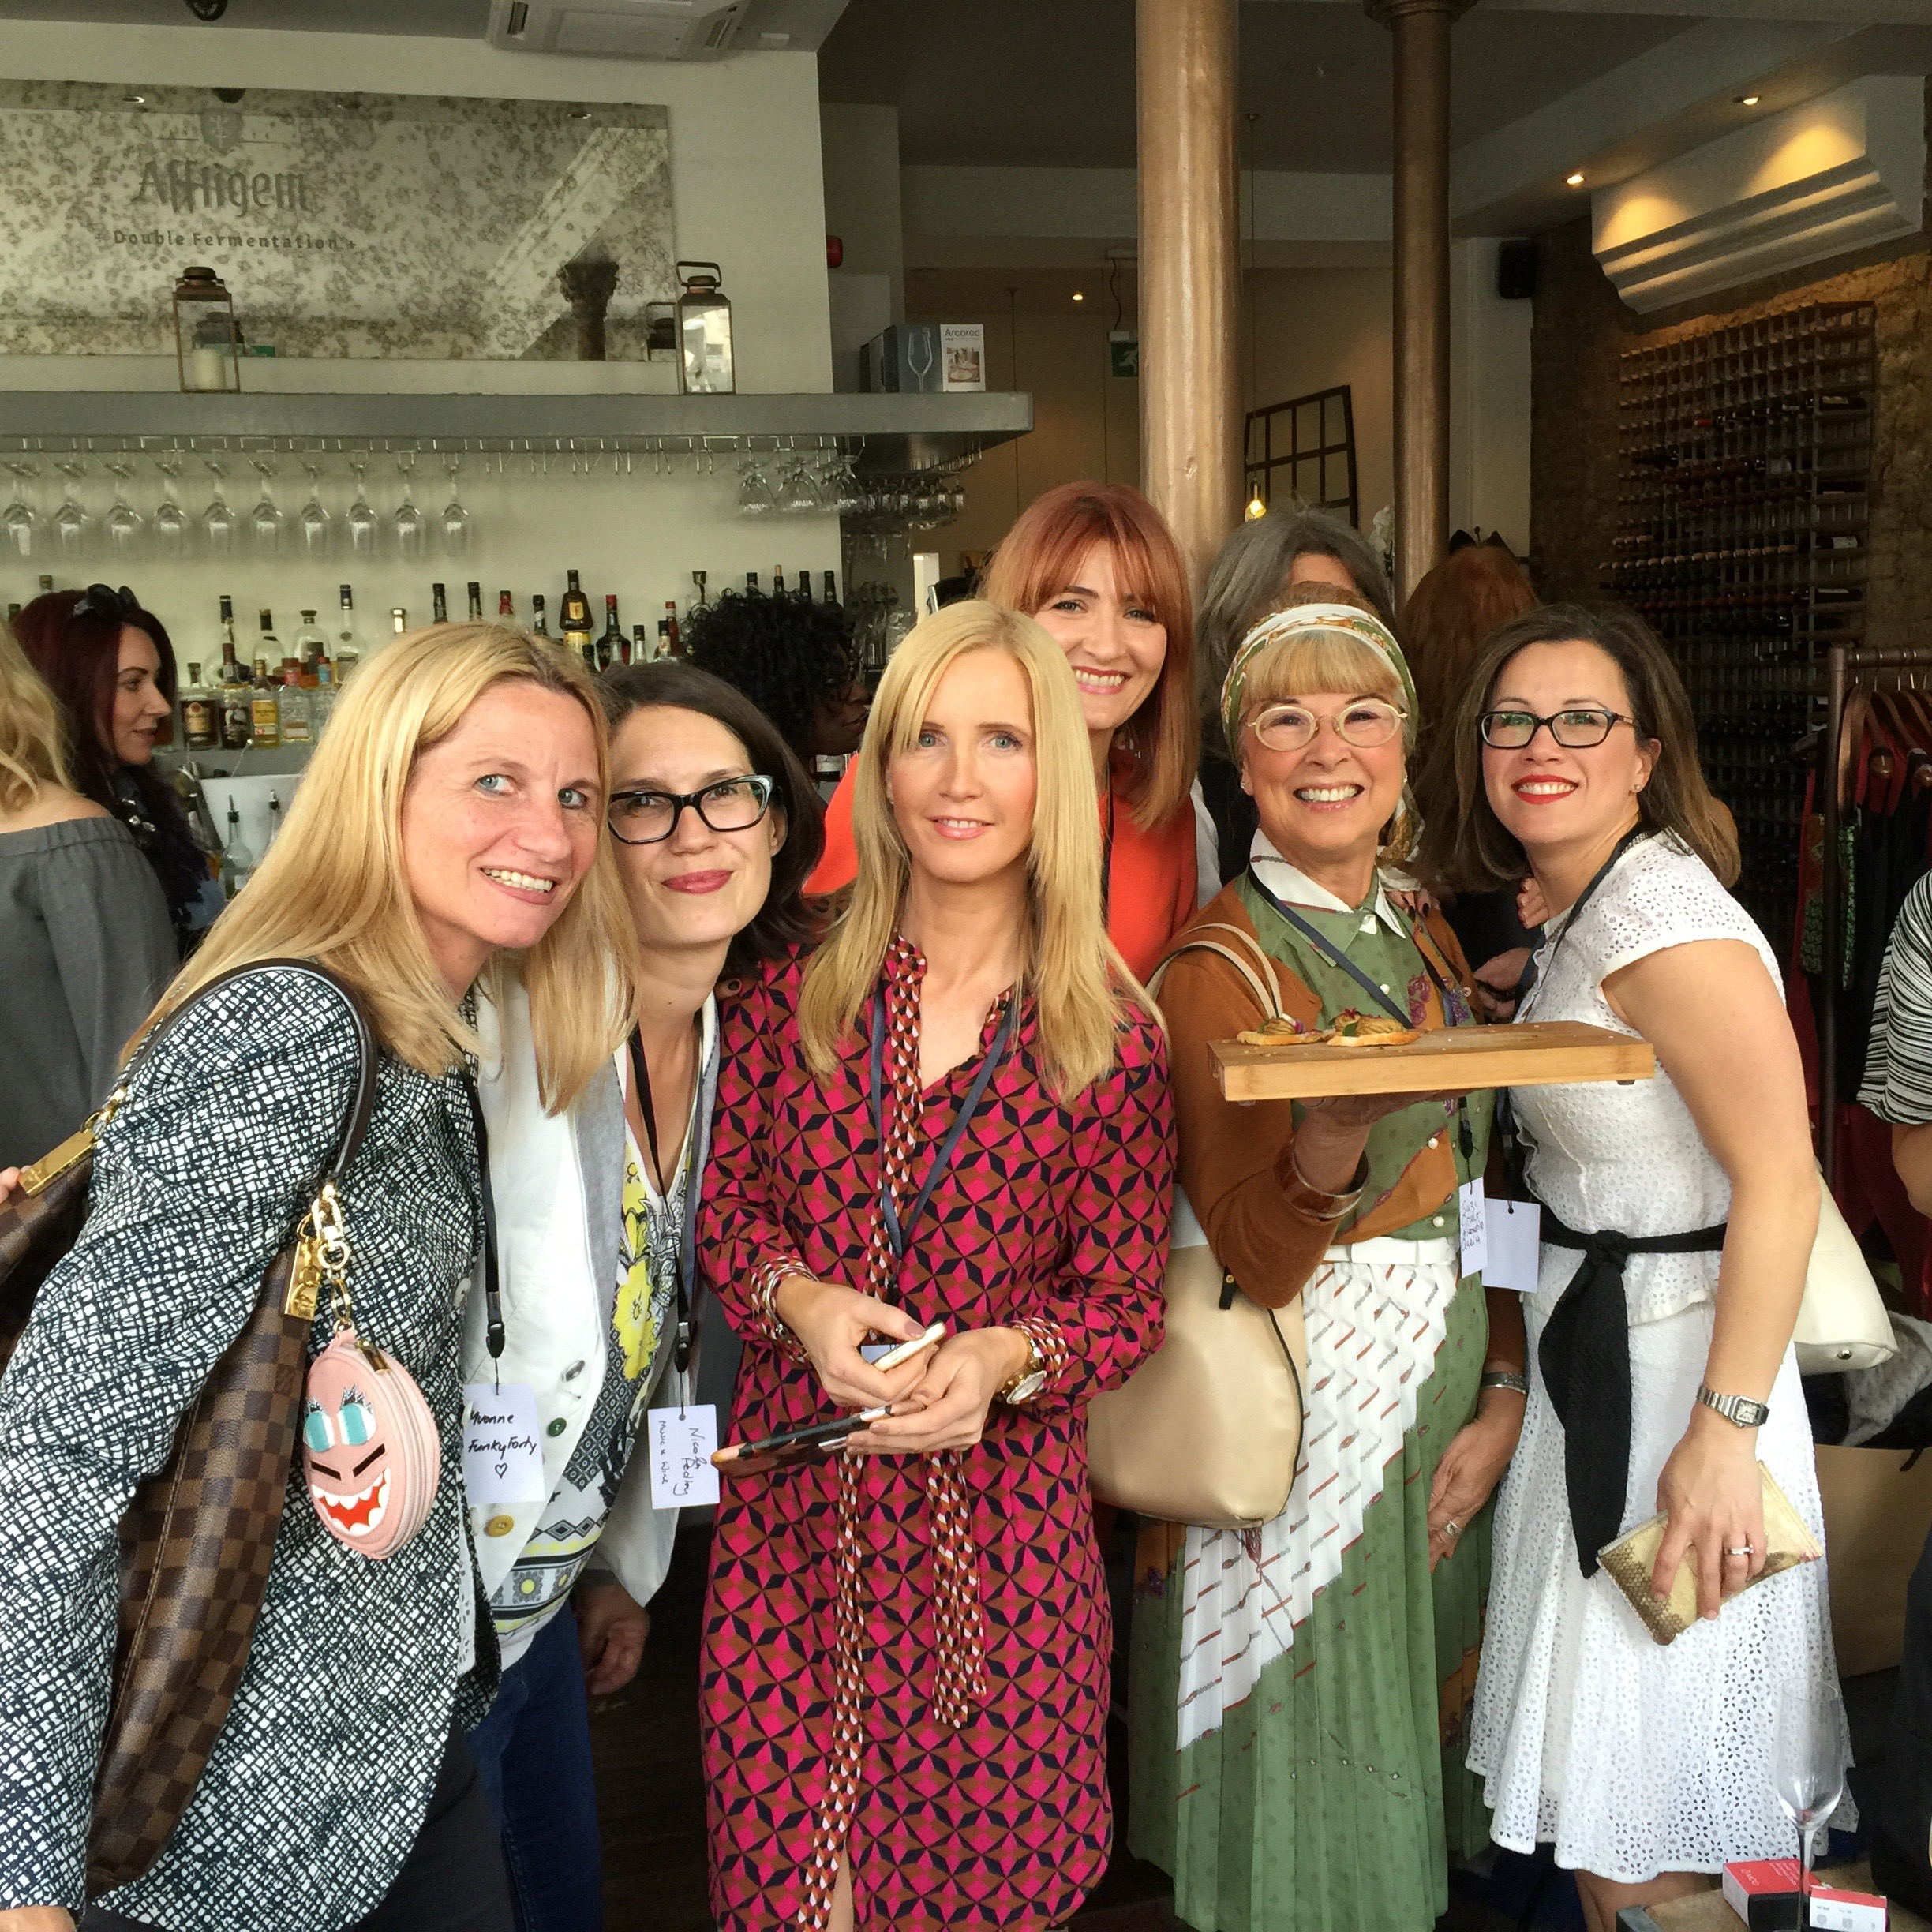 Meeting lovely bloggers & Catherine Summers